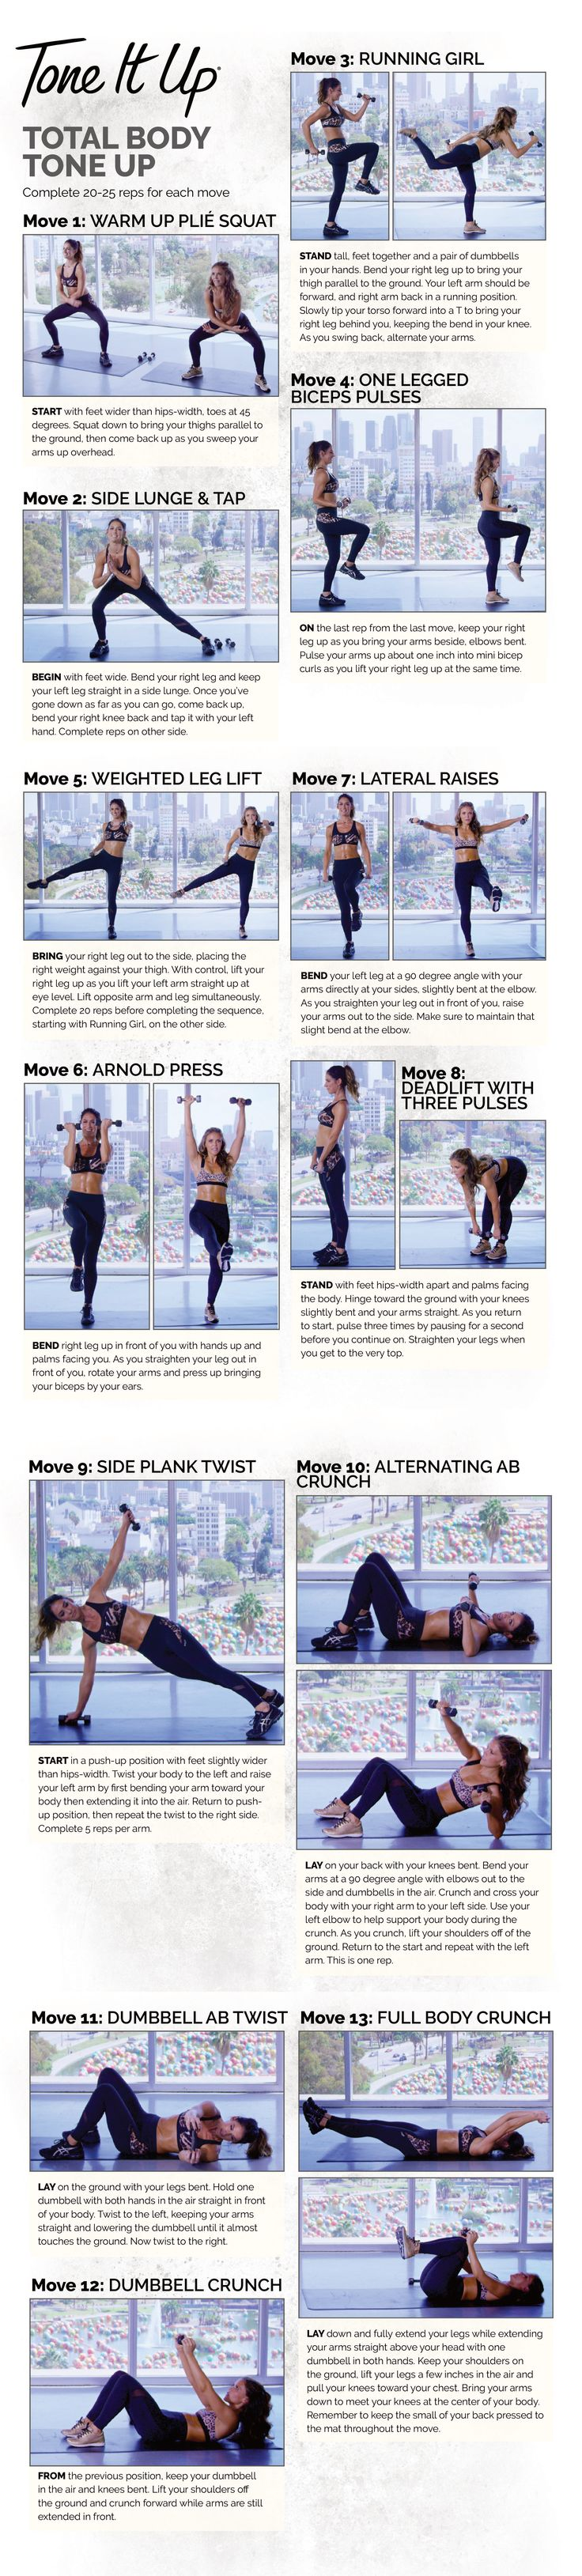 DAILY WORKOUT | ToneItUp.com